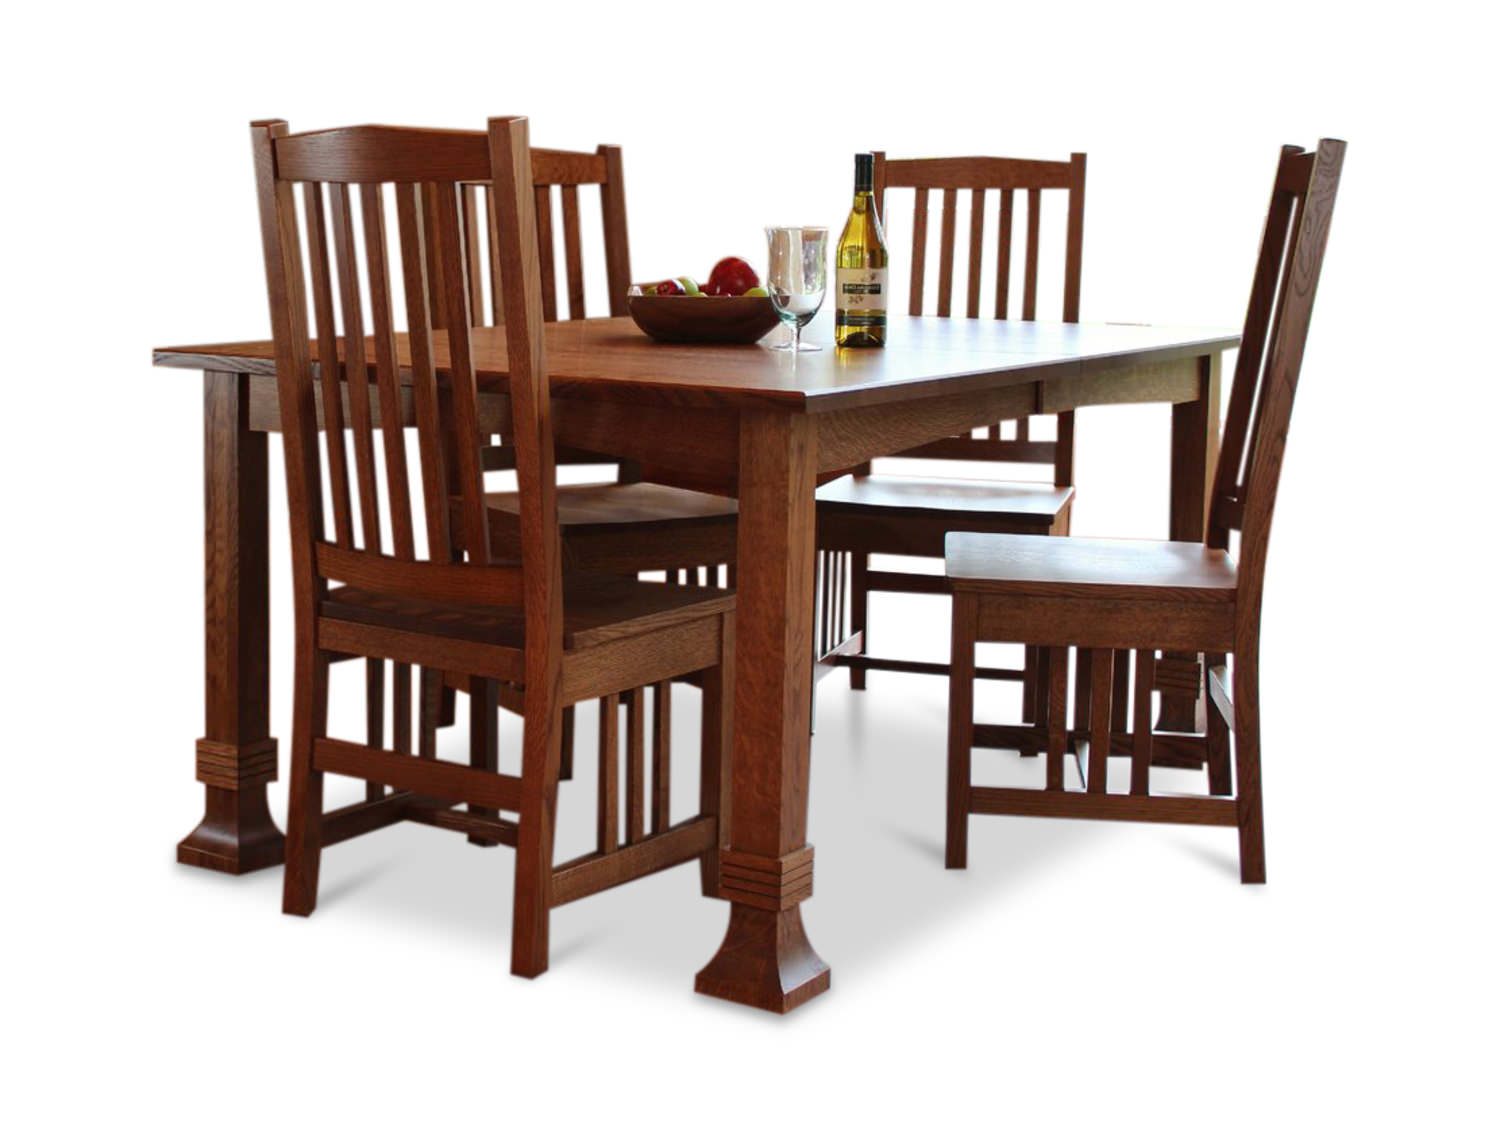 Pleasant Amish Mission Oak Table And 4 Side Chairs Home Interior And Landscaping Mentranervesignezvosmurscom